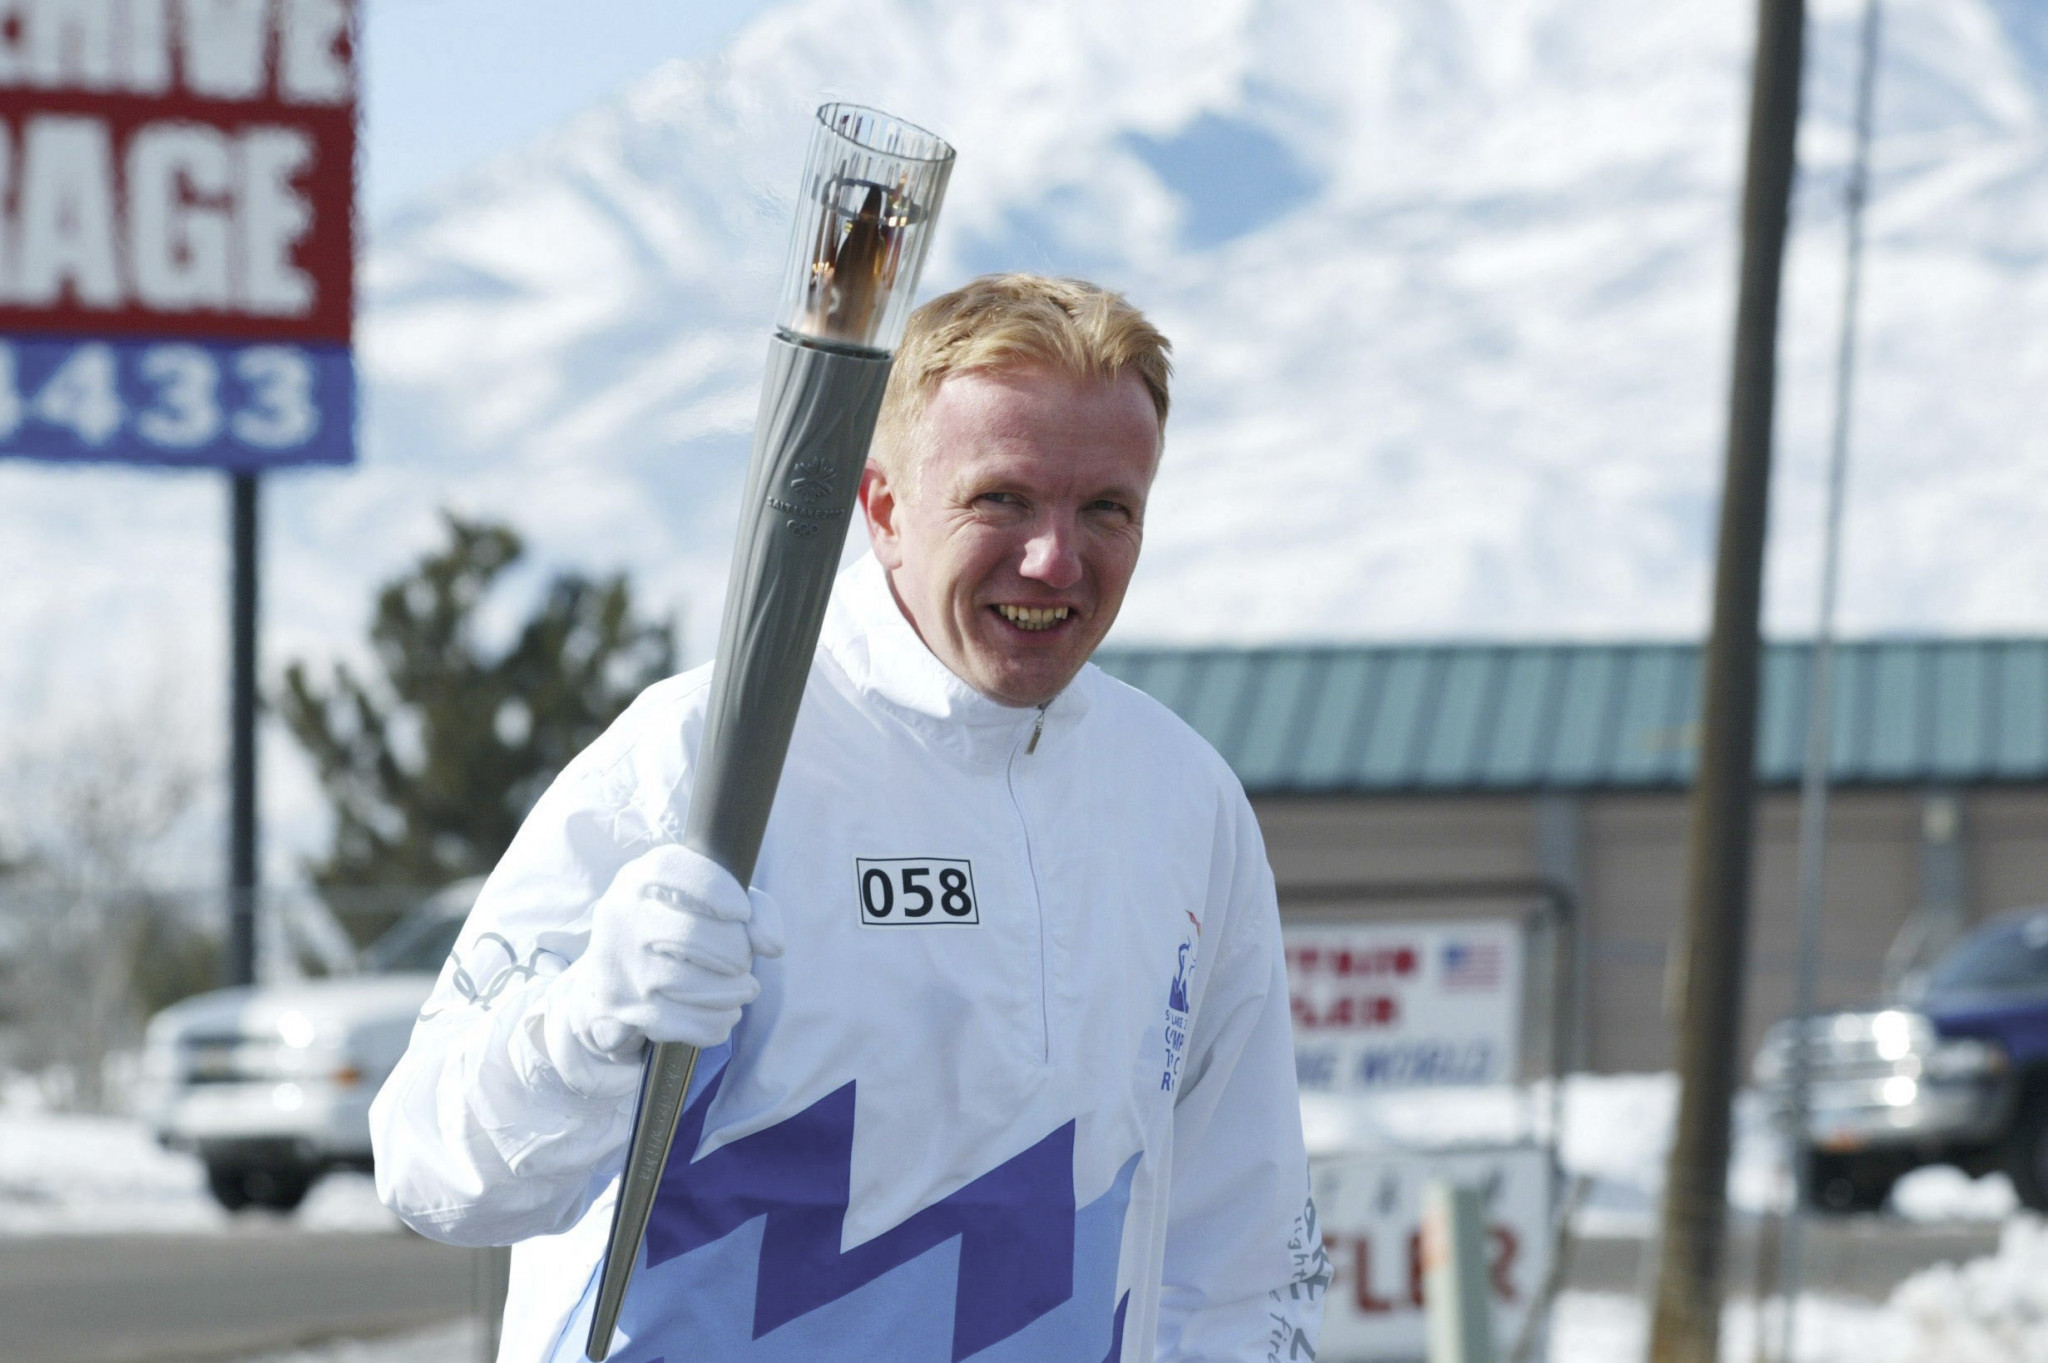 Roland Baar pictured carrying the Olympic Torch before the Salt Lake City 2002 Olympics ©Getty Images